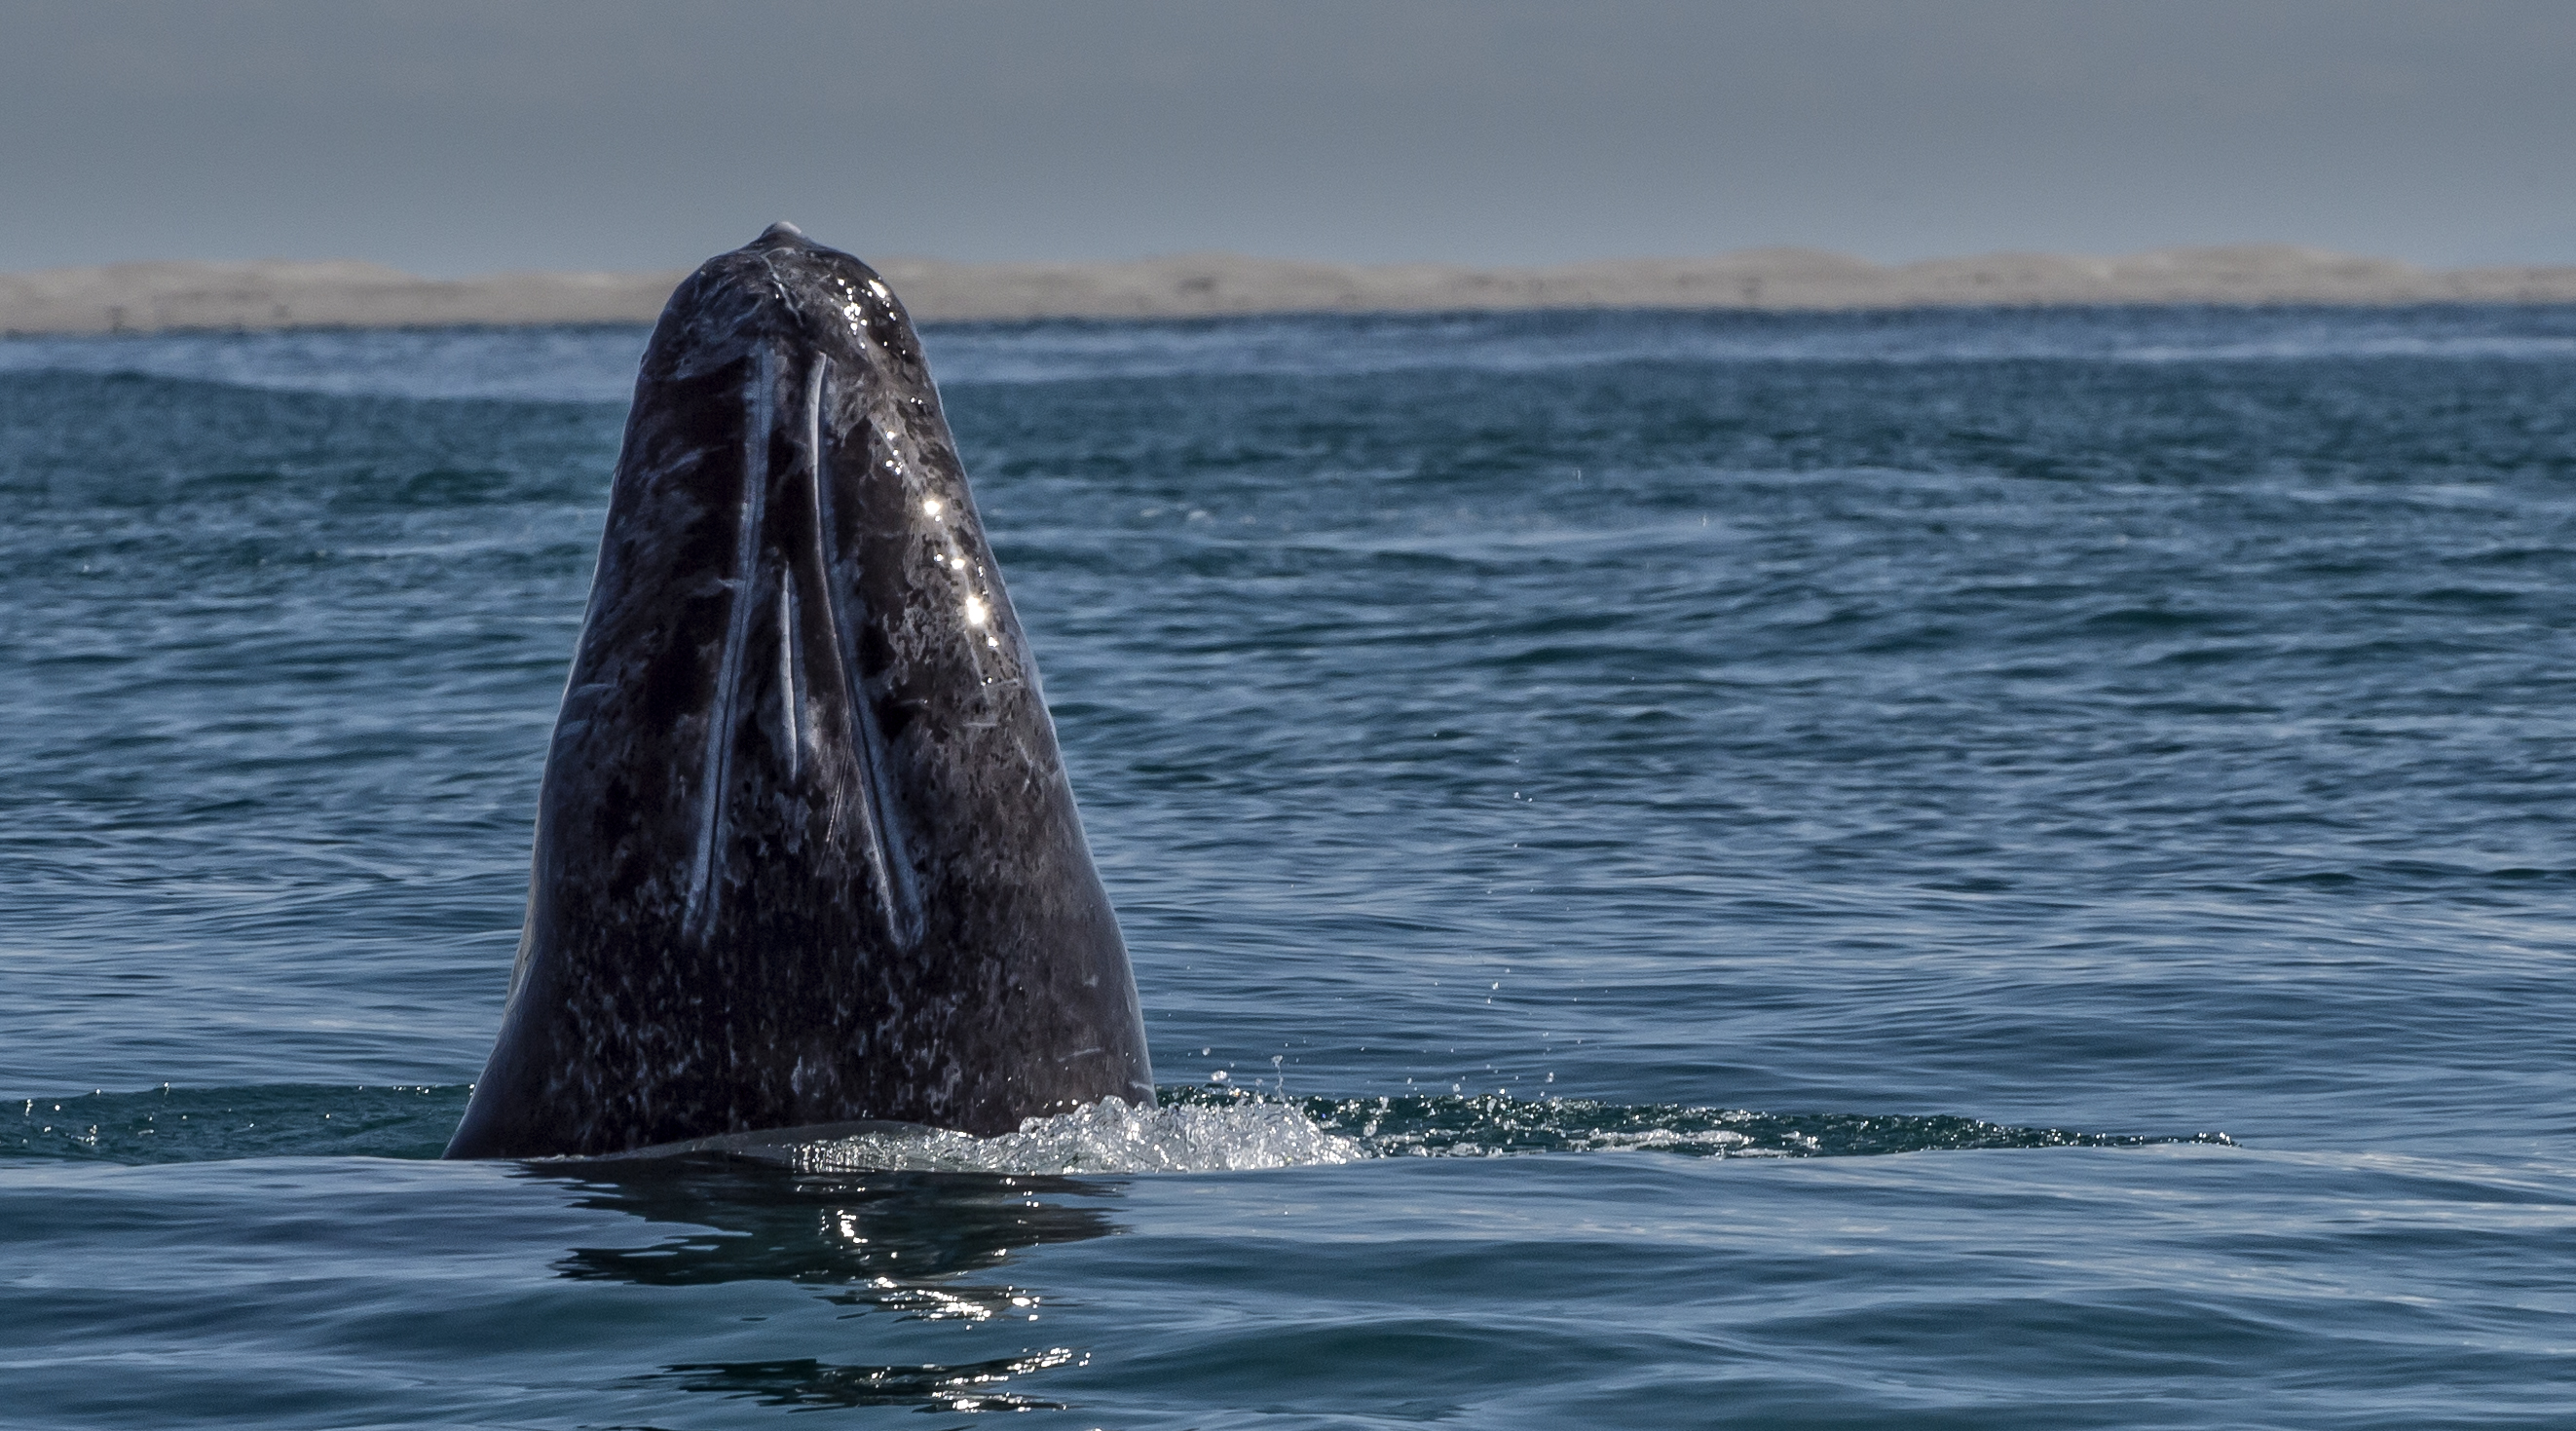 whale watching sites best places around the world cnn travel